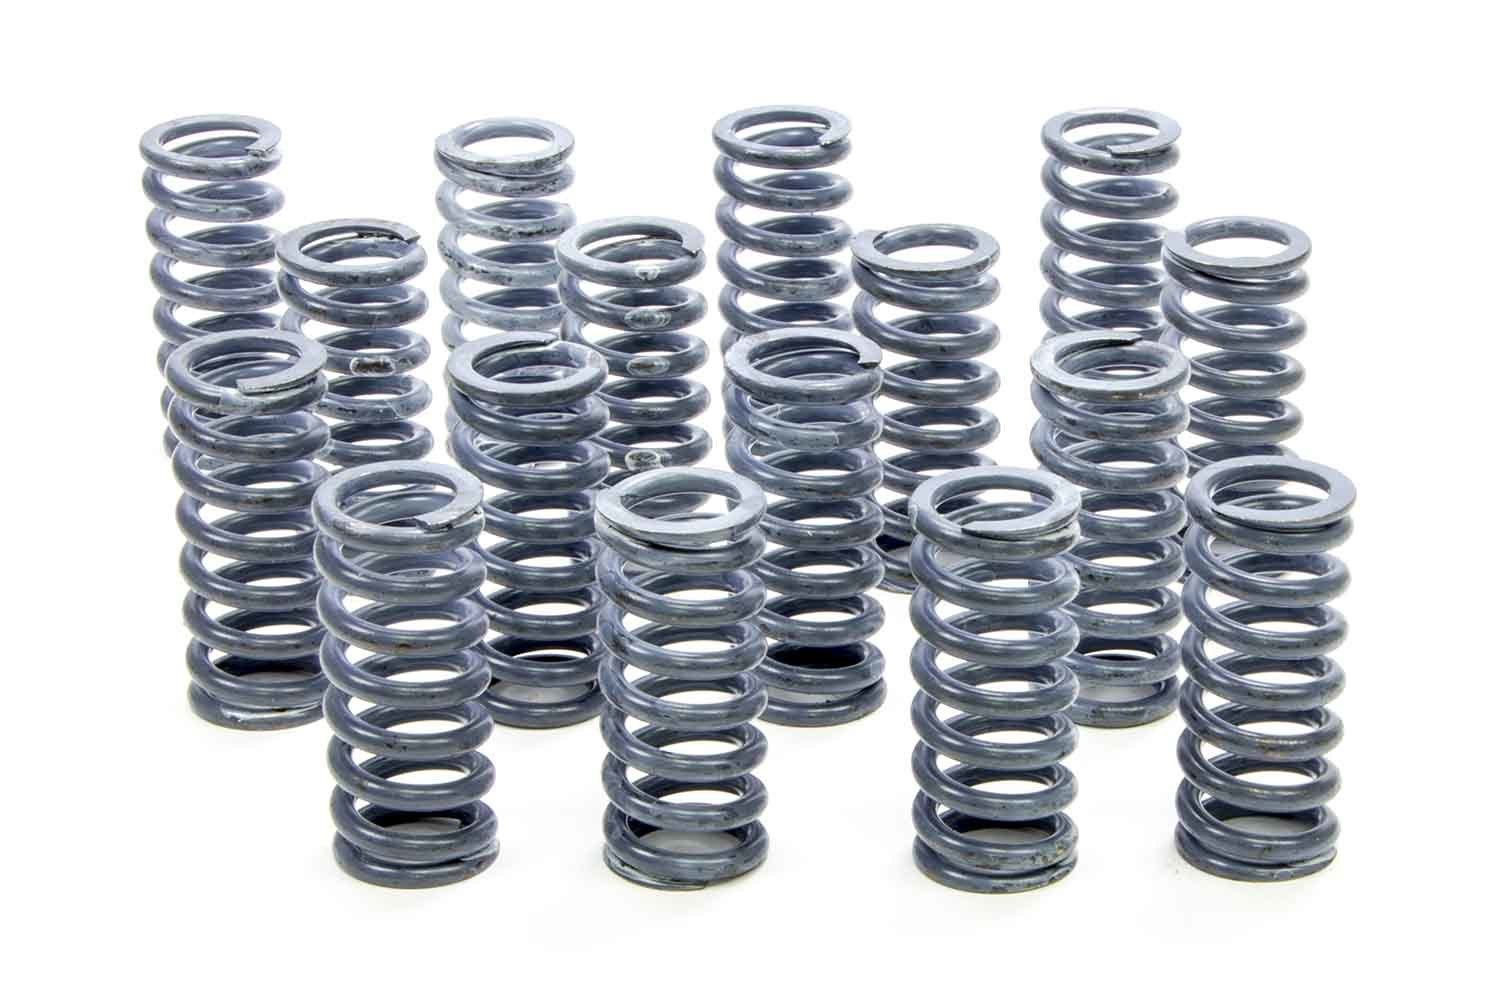 Isky Cams 185-G Valve Spring, Single Spring, 85 lb/in at 2 in, 1.110 in OD, Ford Flathead, Set of 16